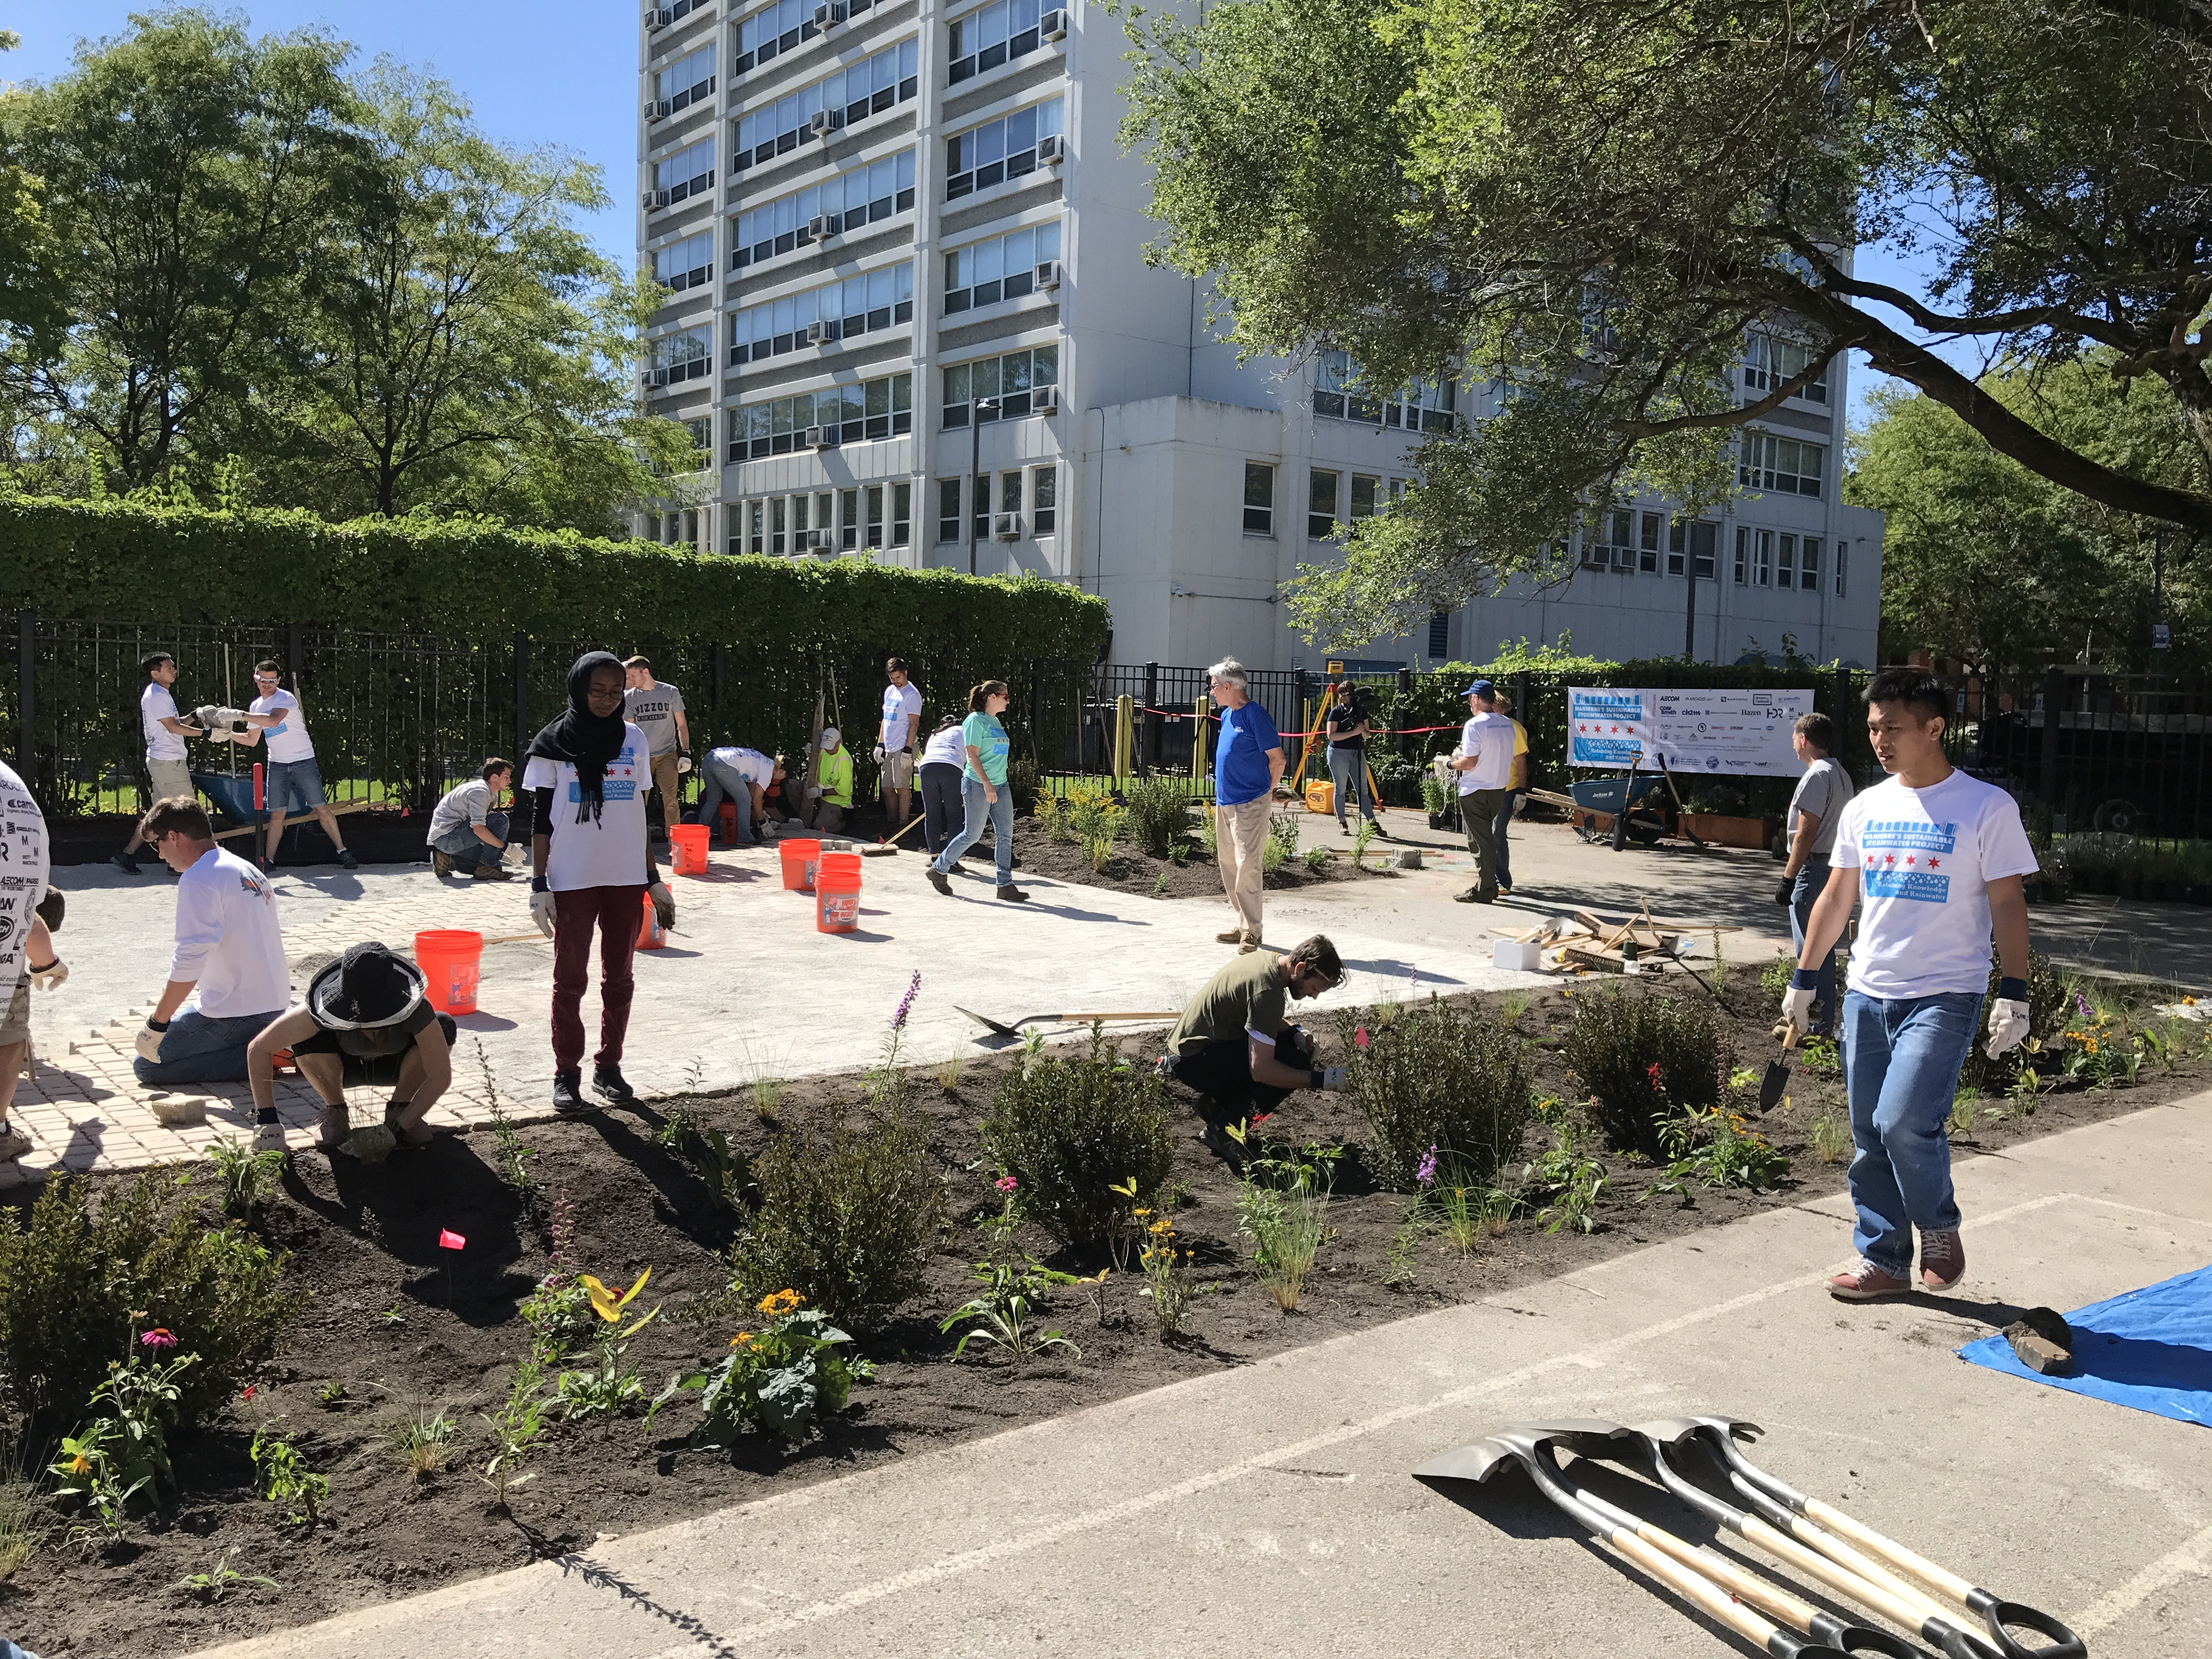 Survey results caution against 'one-size-fits-all' approach to green infrastructure outreach